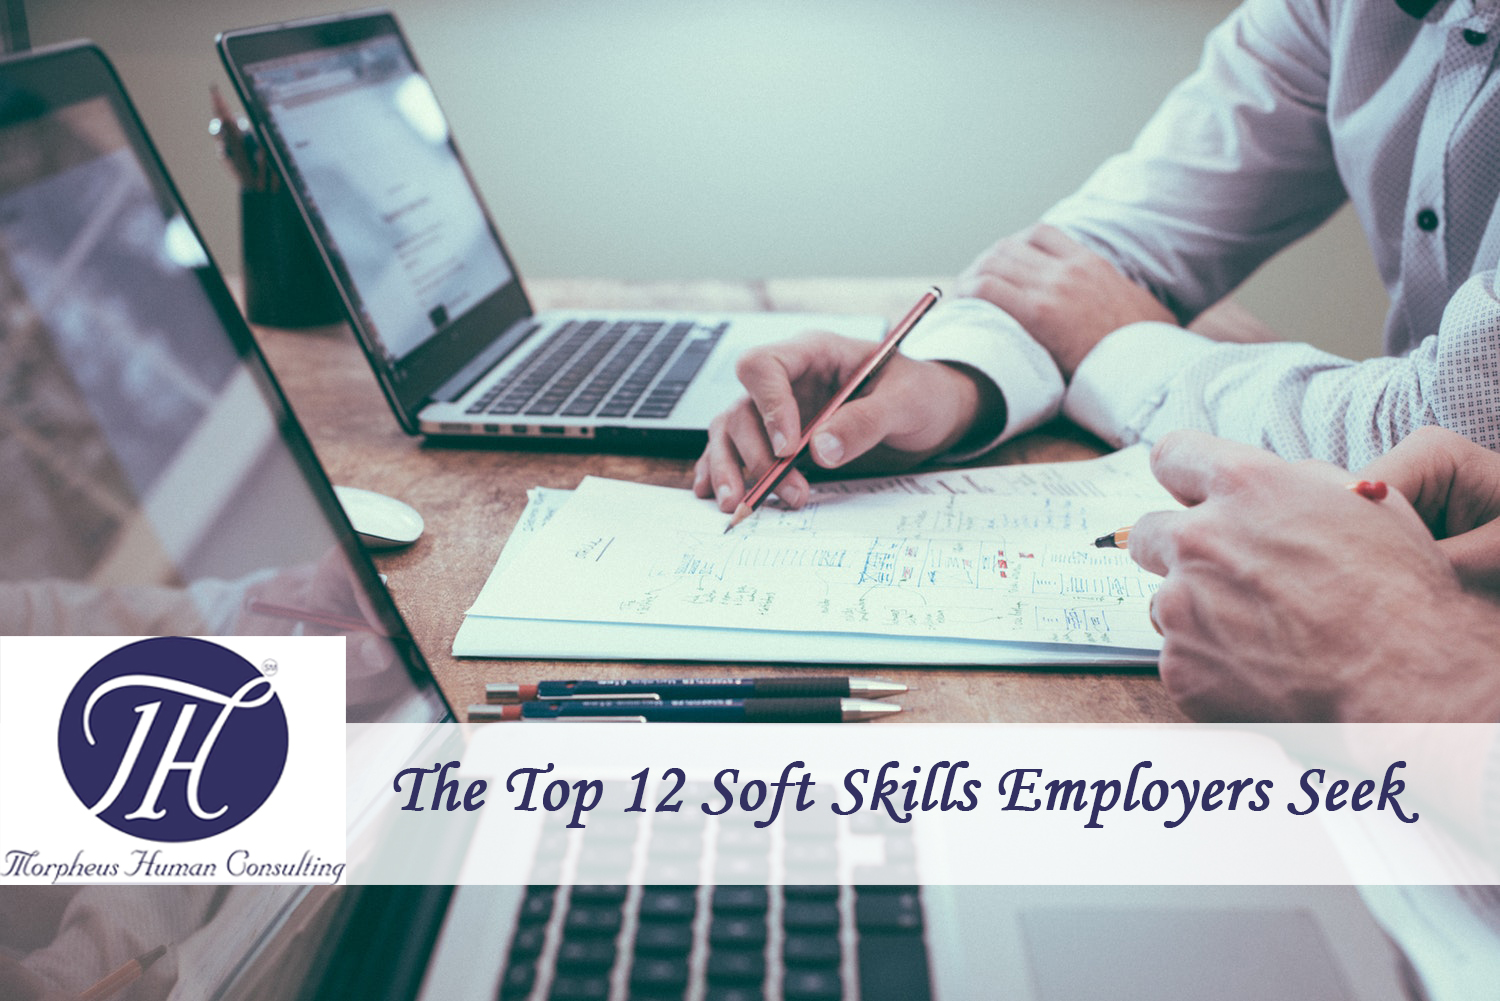 The Top 12 Soft Skills Employers Seek